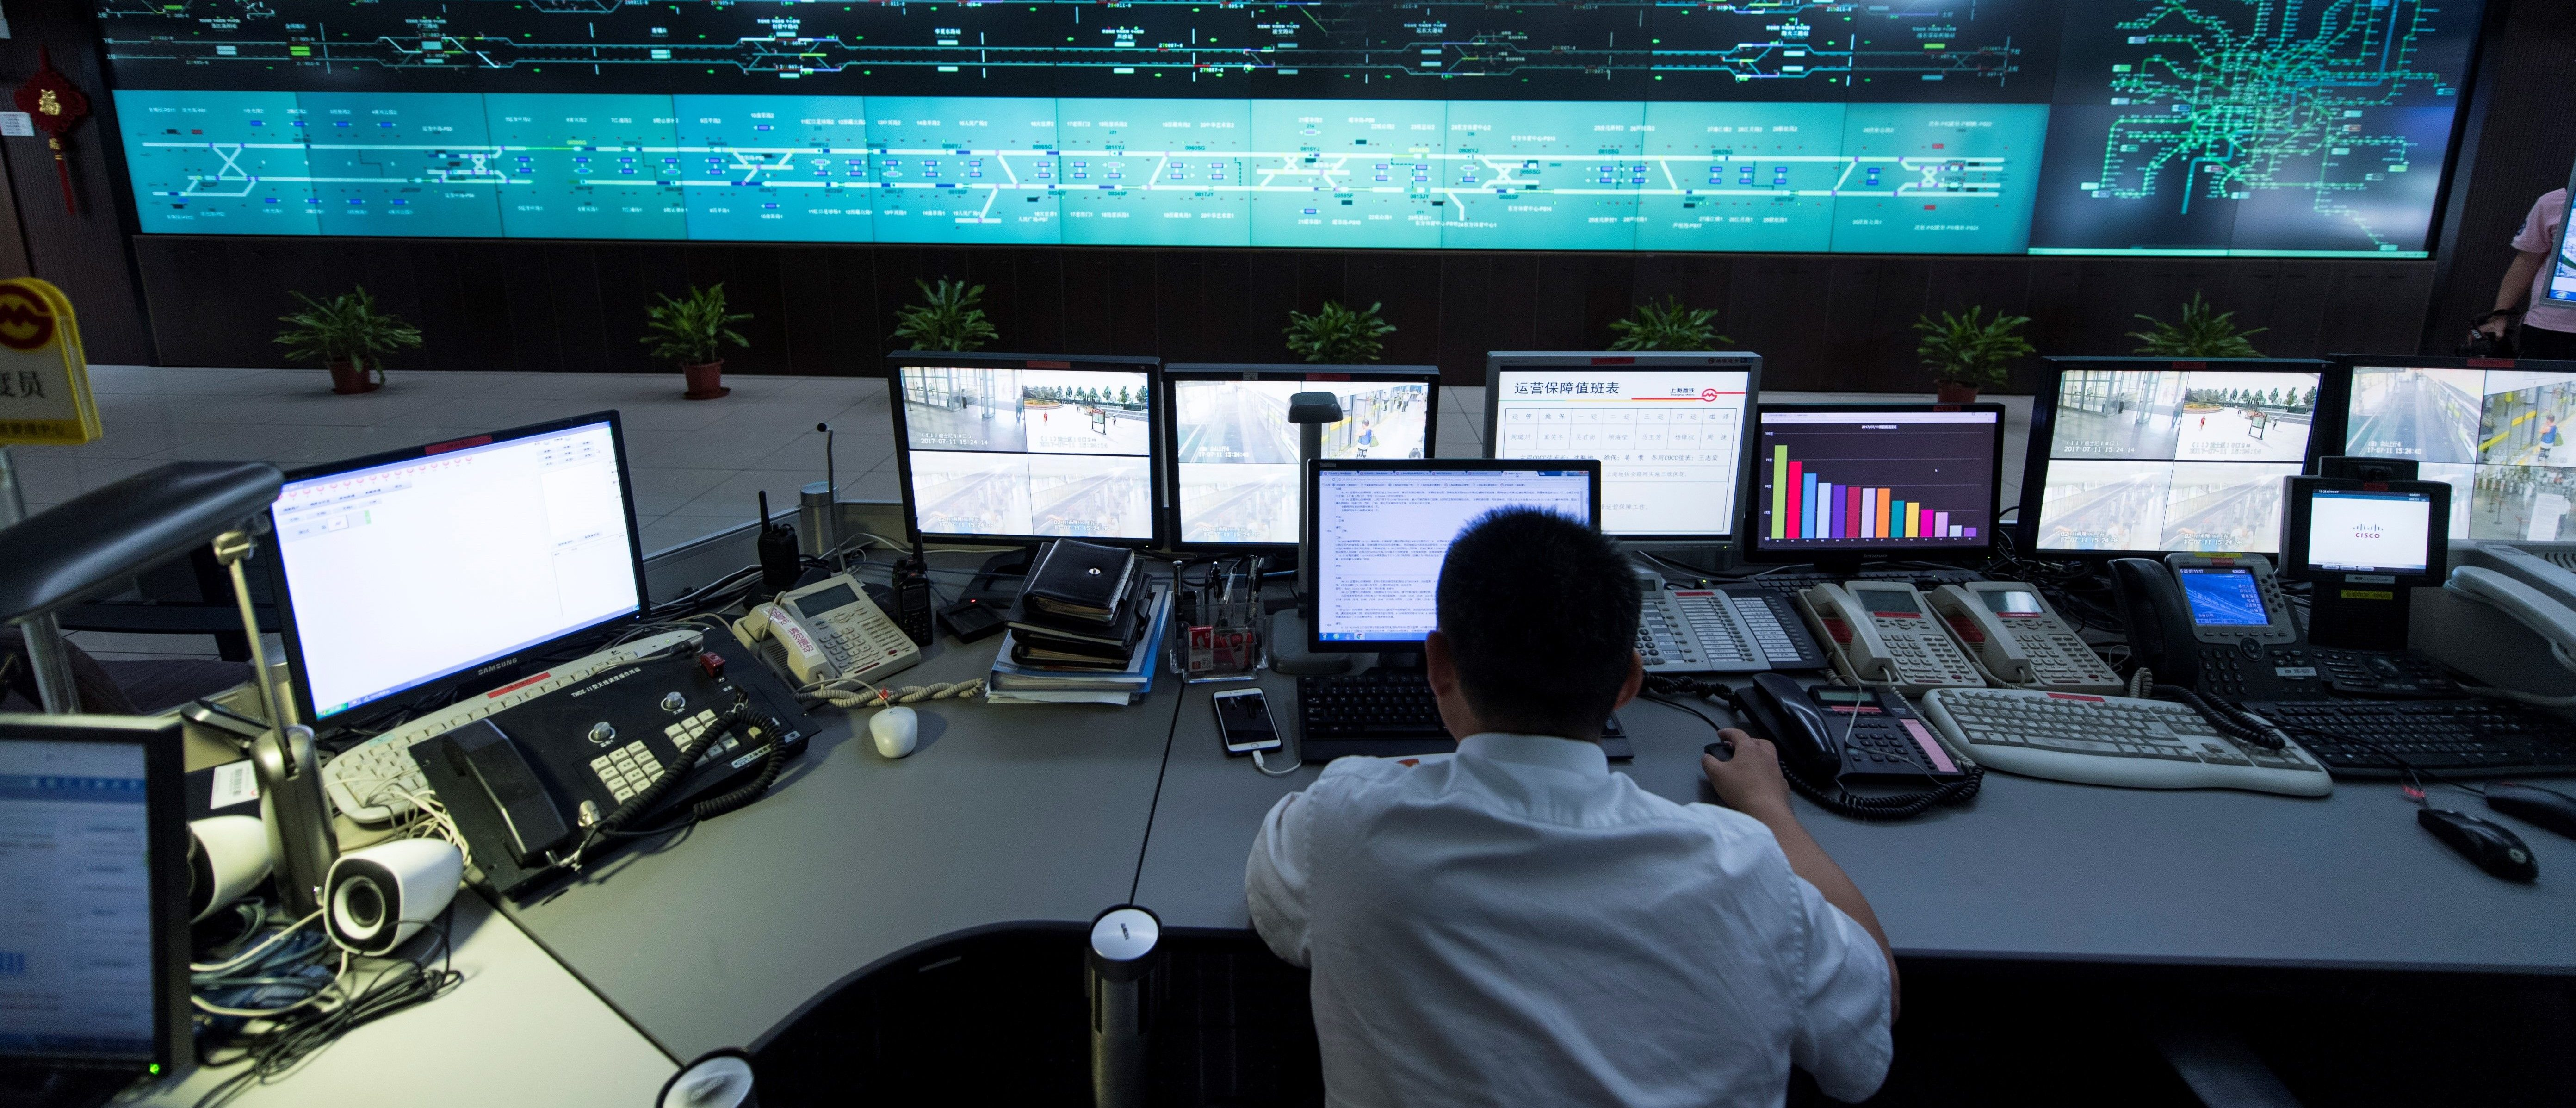 This picture taken on July 11, 2017 shows a man working at the central command centre of the Shanghai metro system. (JOHANNES EISELE/AFP/Getty Images)